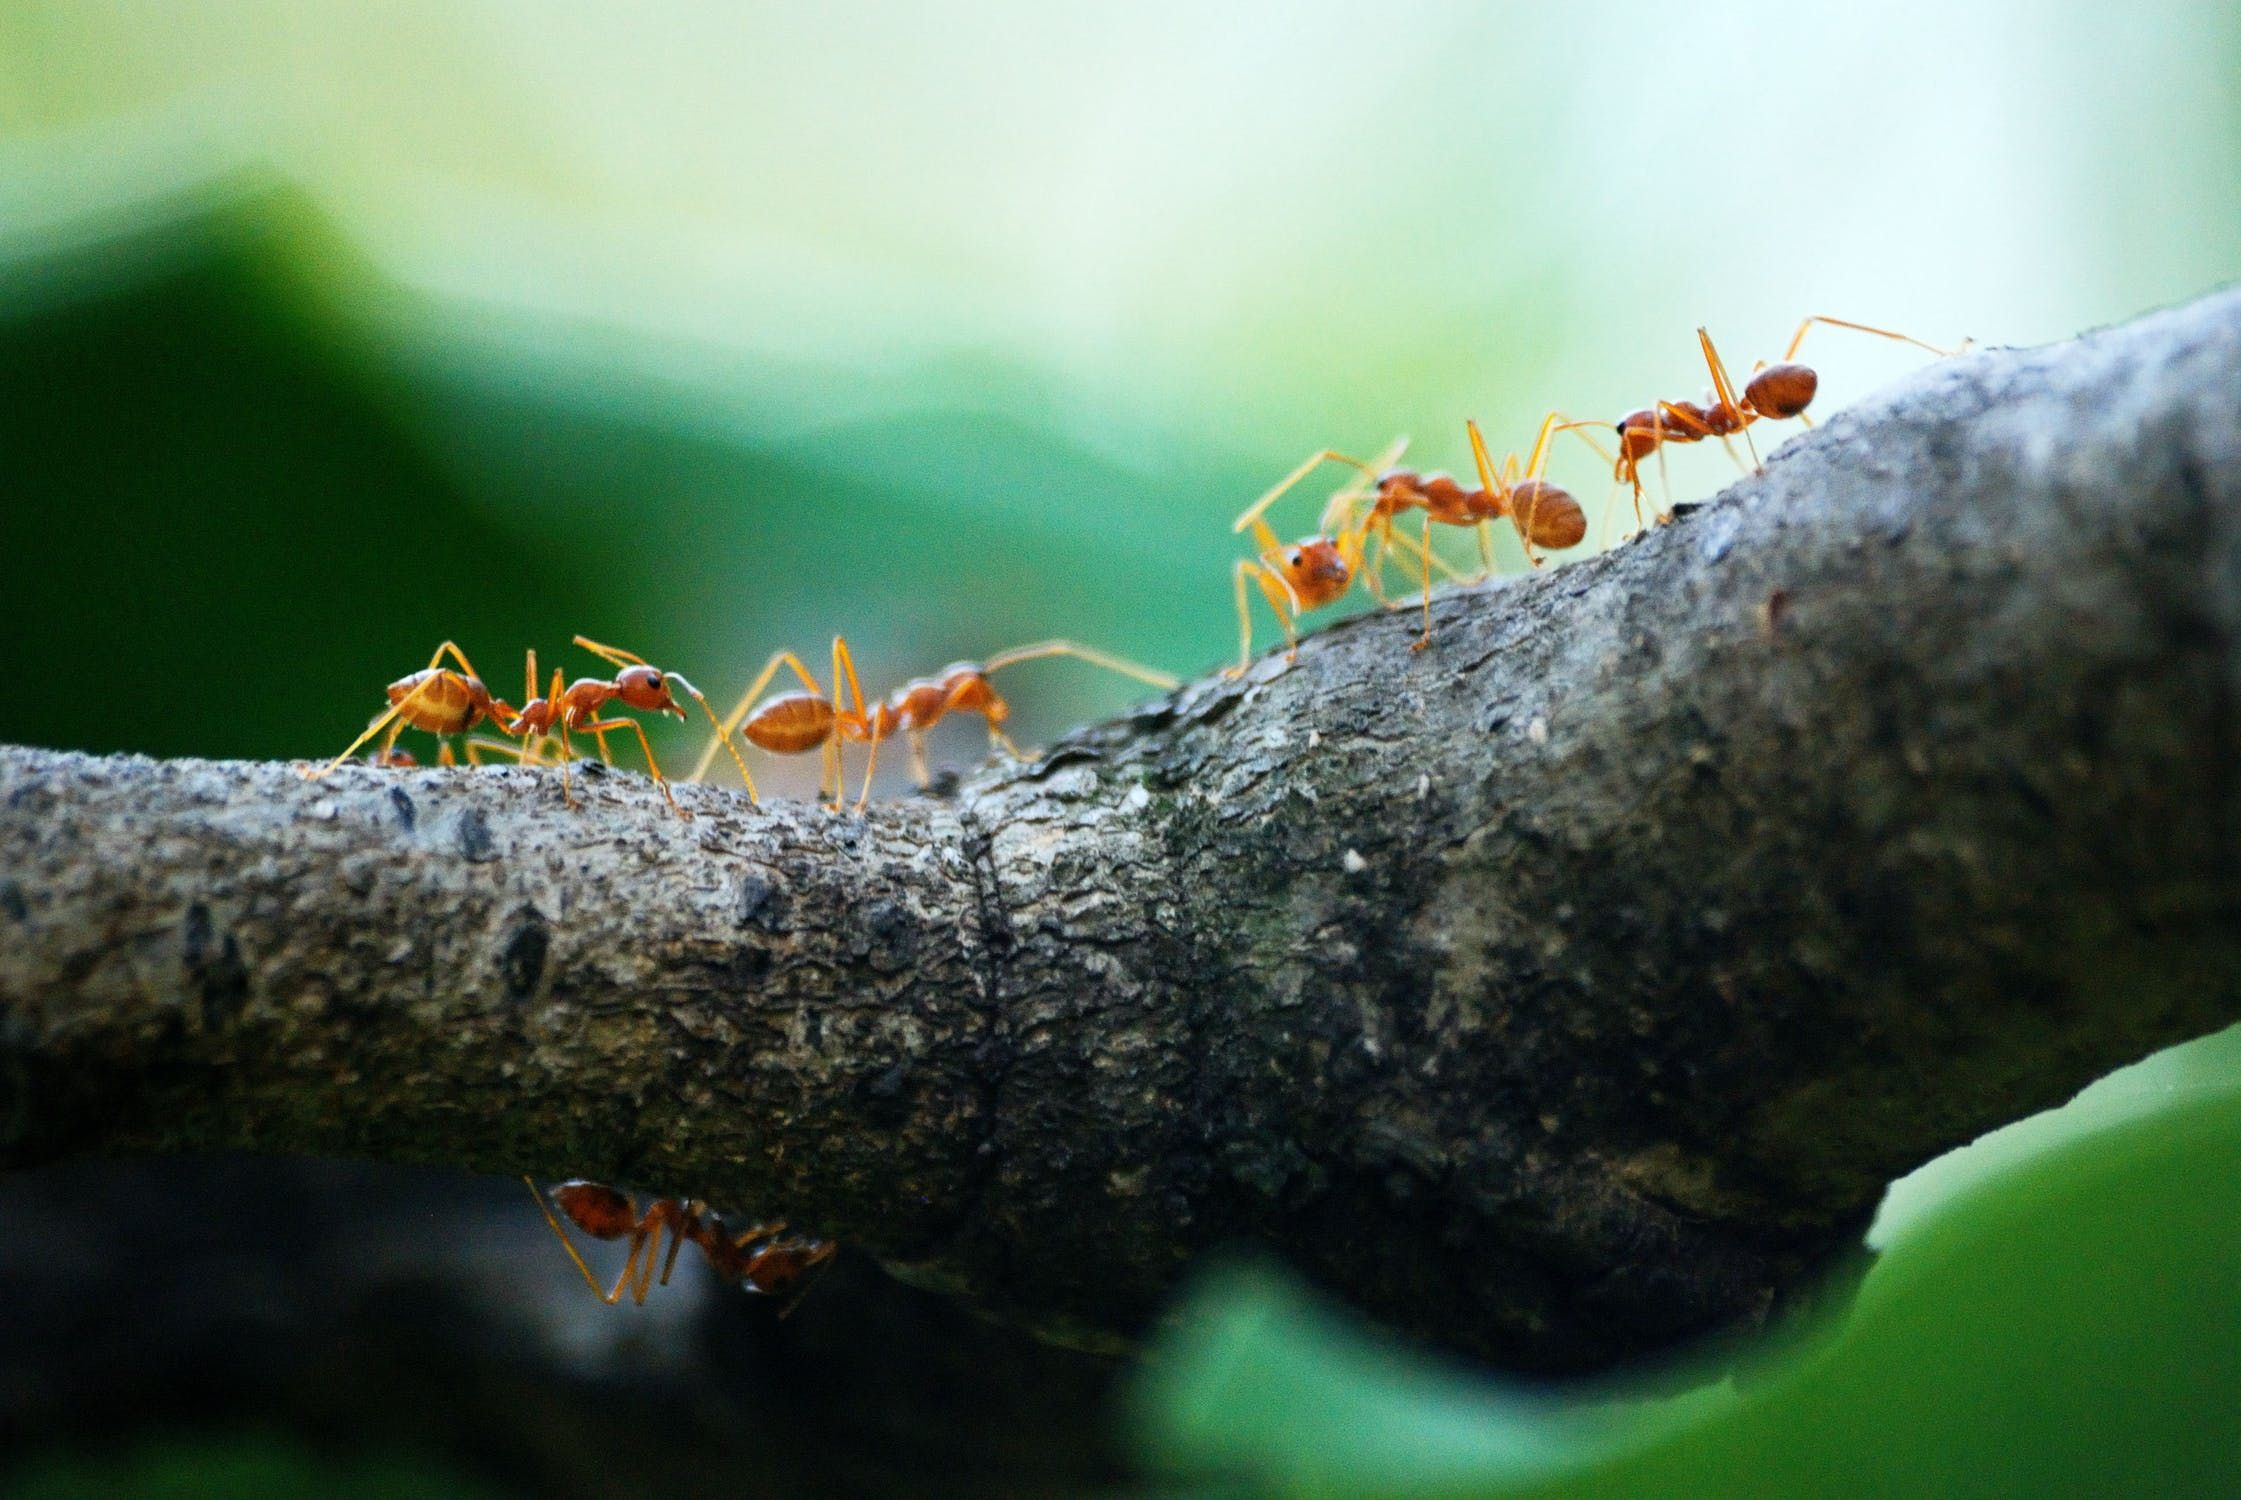 Ants walking on a tree branch